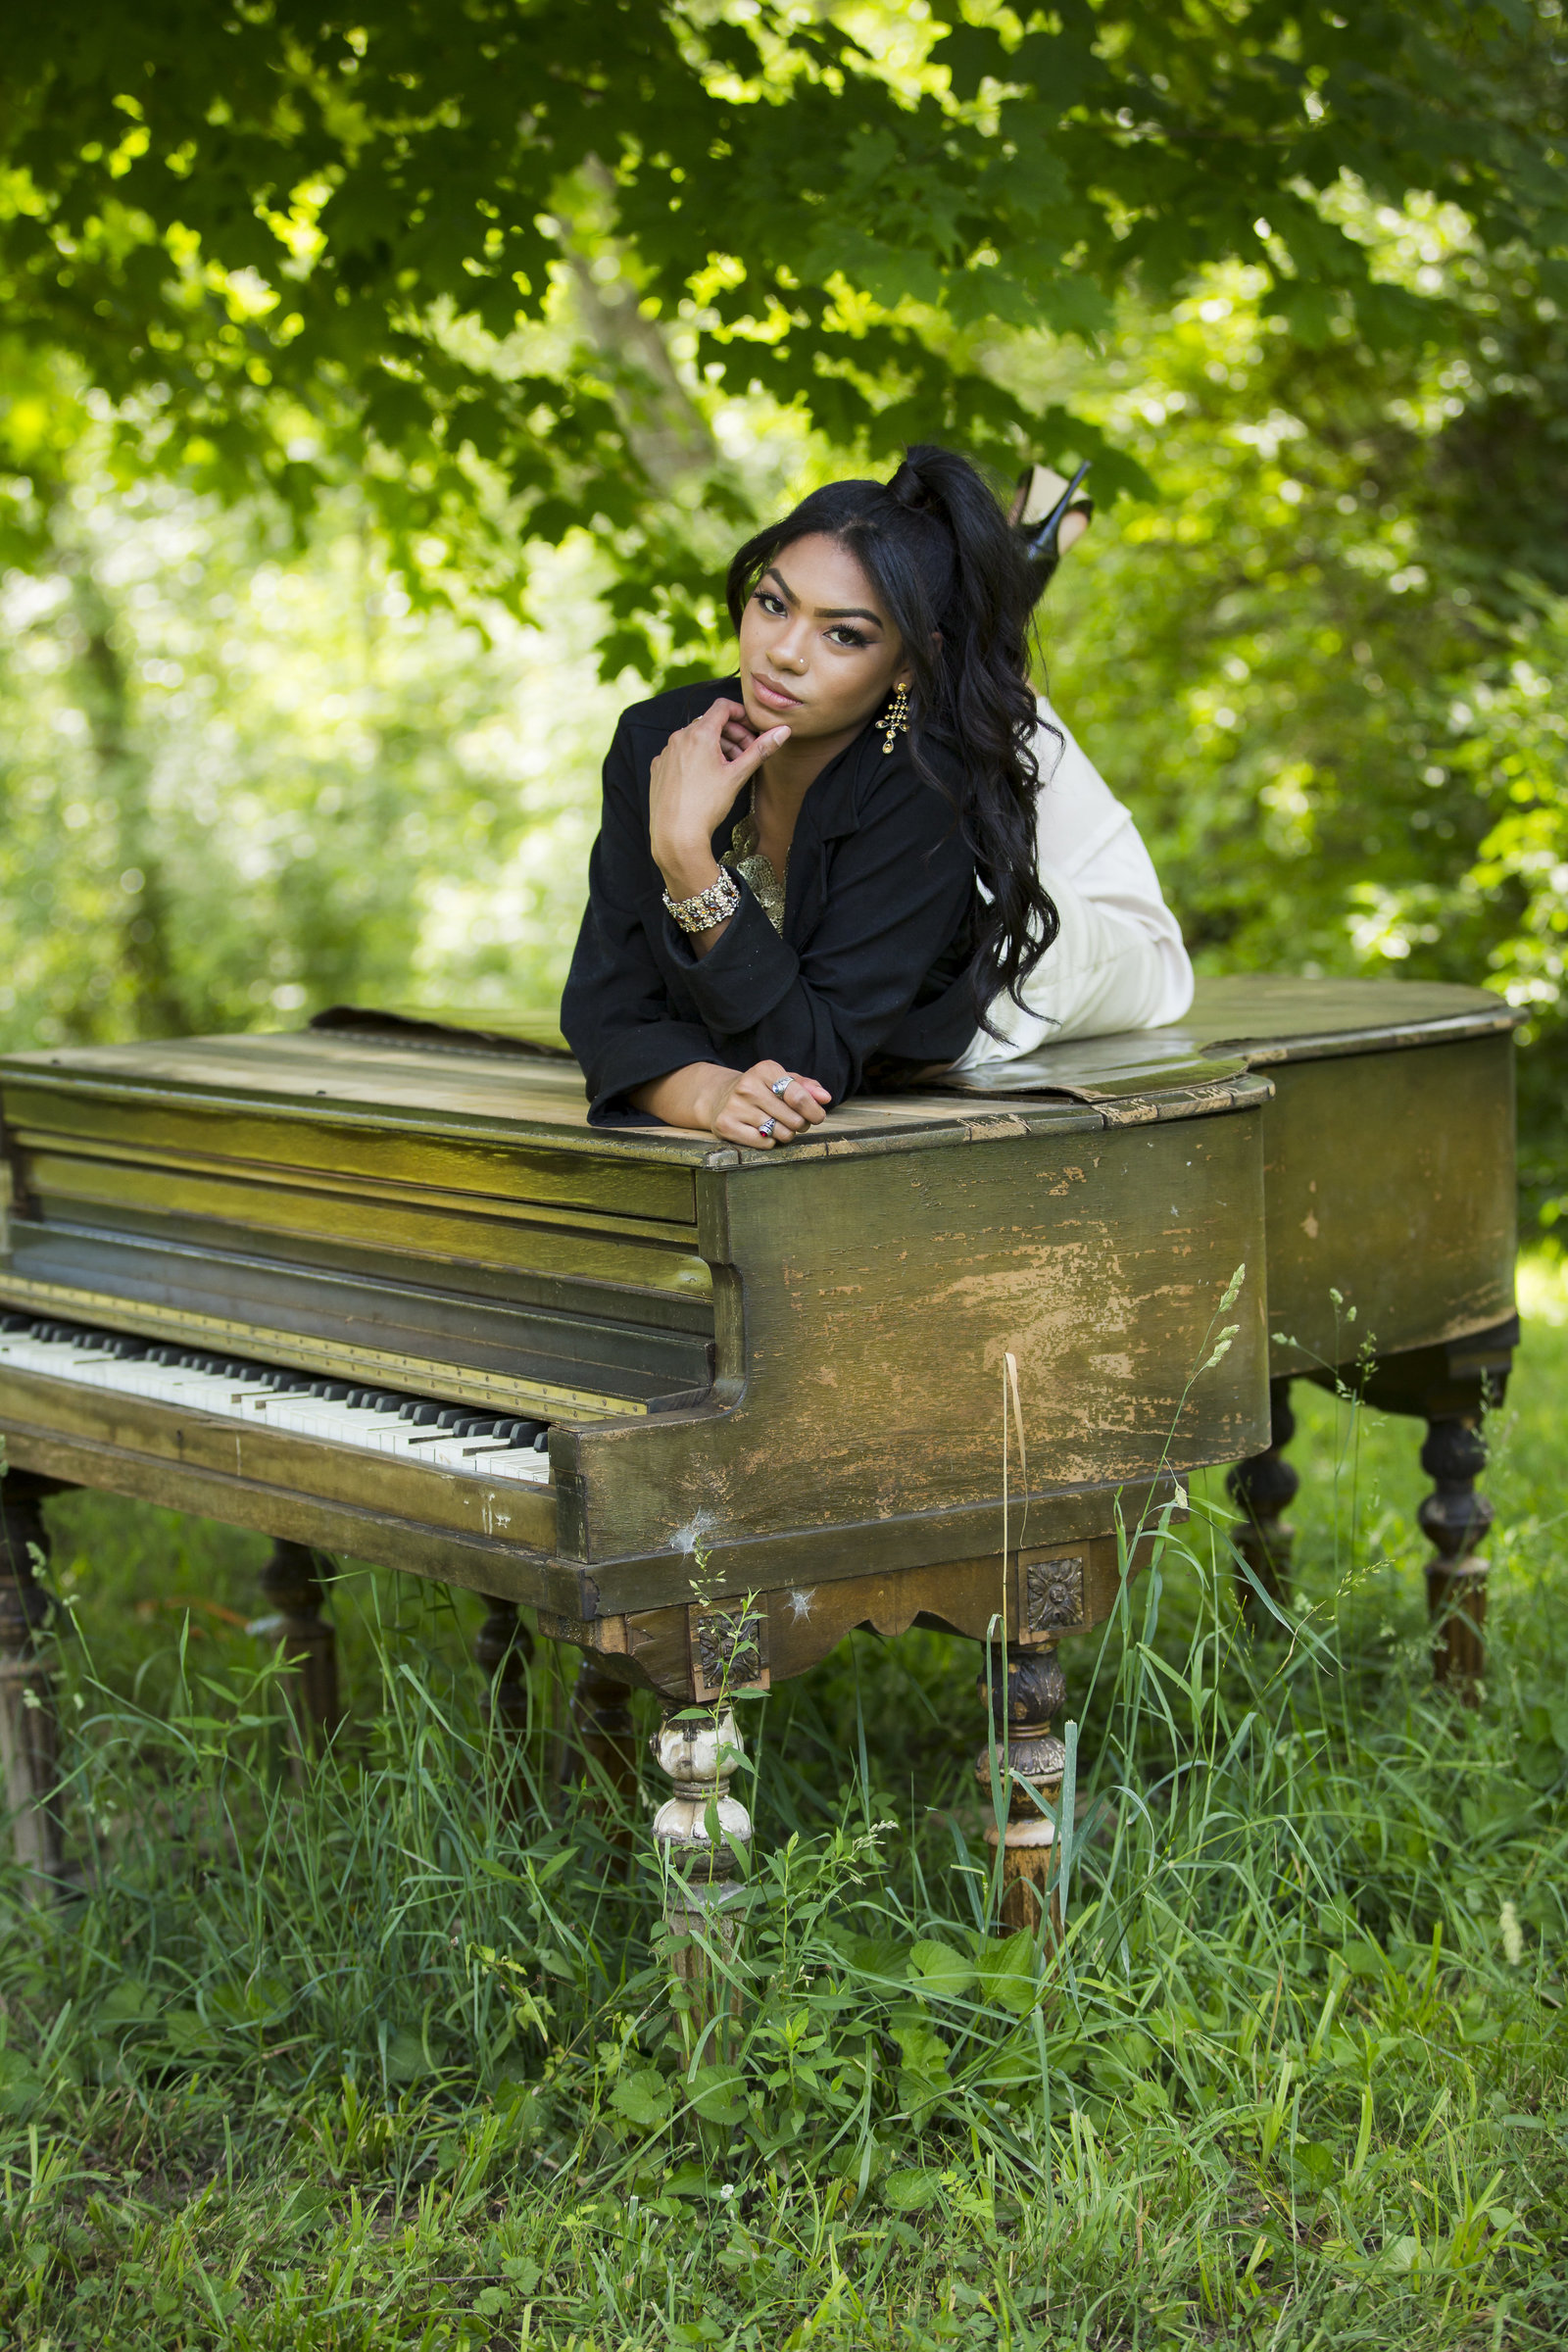 warner-robins-georgia-natural-piano-senior-photographer-jlfarmer-3088